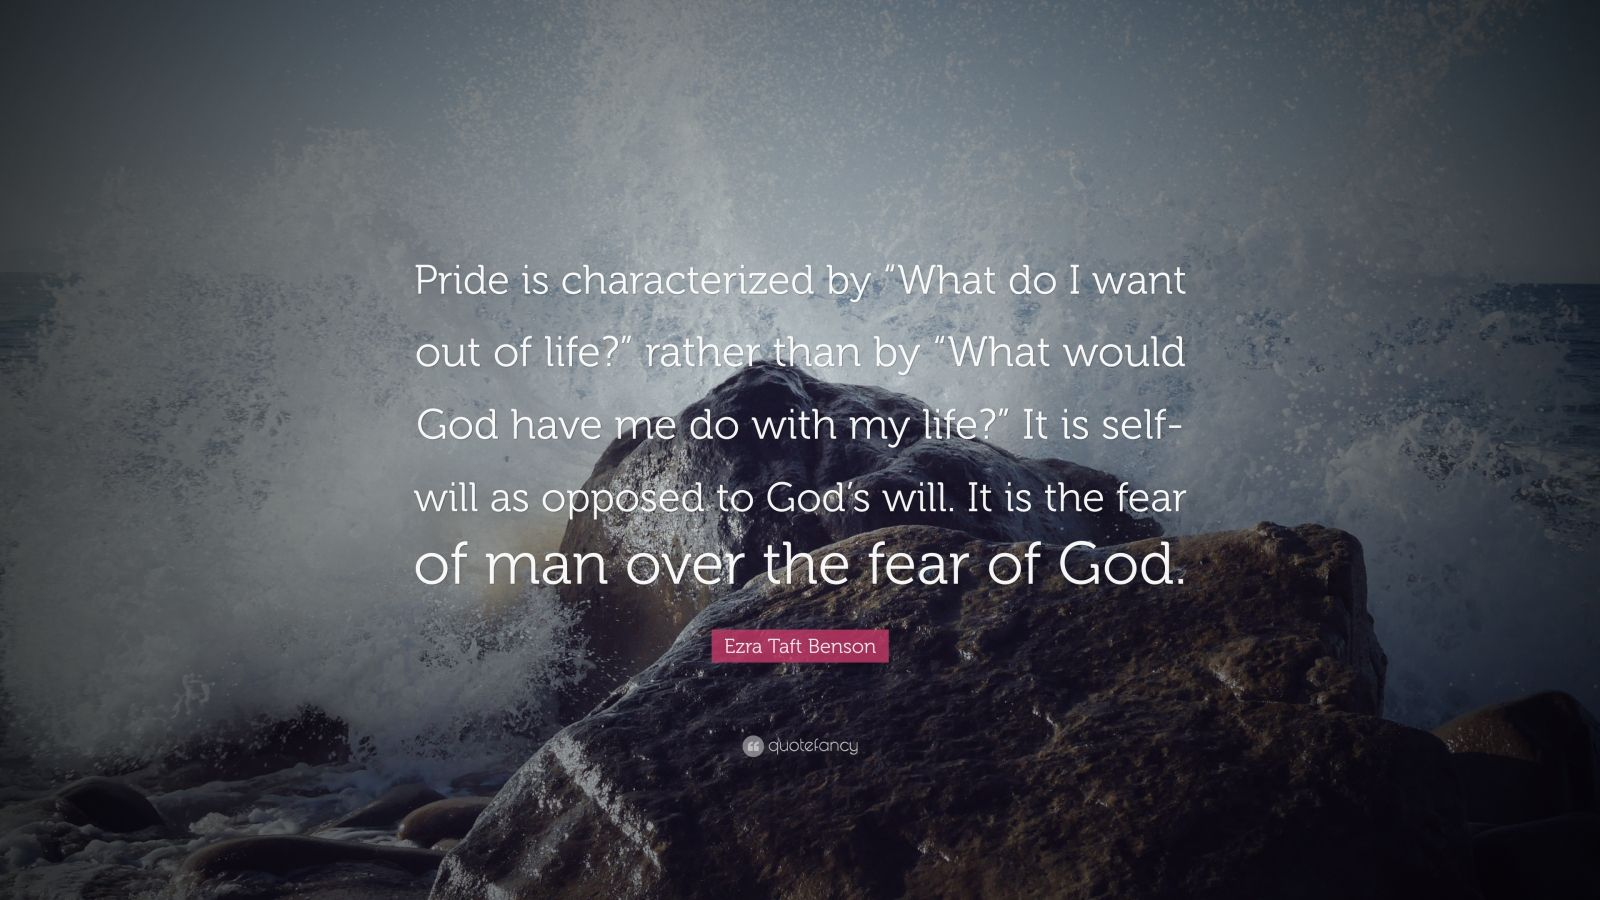 """Ezra Taft Benson Quote: """"Pride is characterized by """"What do I want out of life?"""" rather than by """"What would God have me do with my life?"""" It is self-will as opposed to God's will. It is the fear of man over the fear of God."""""""